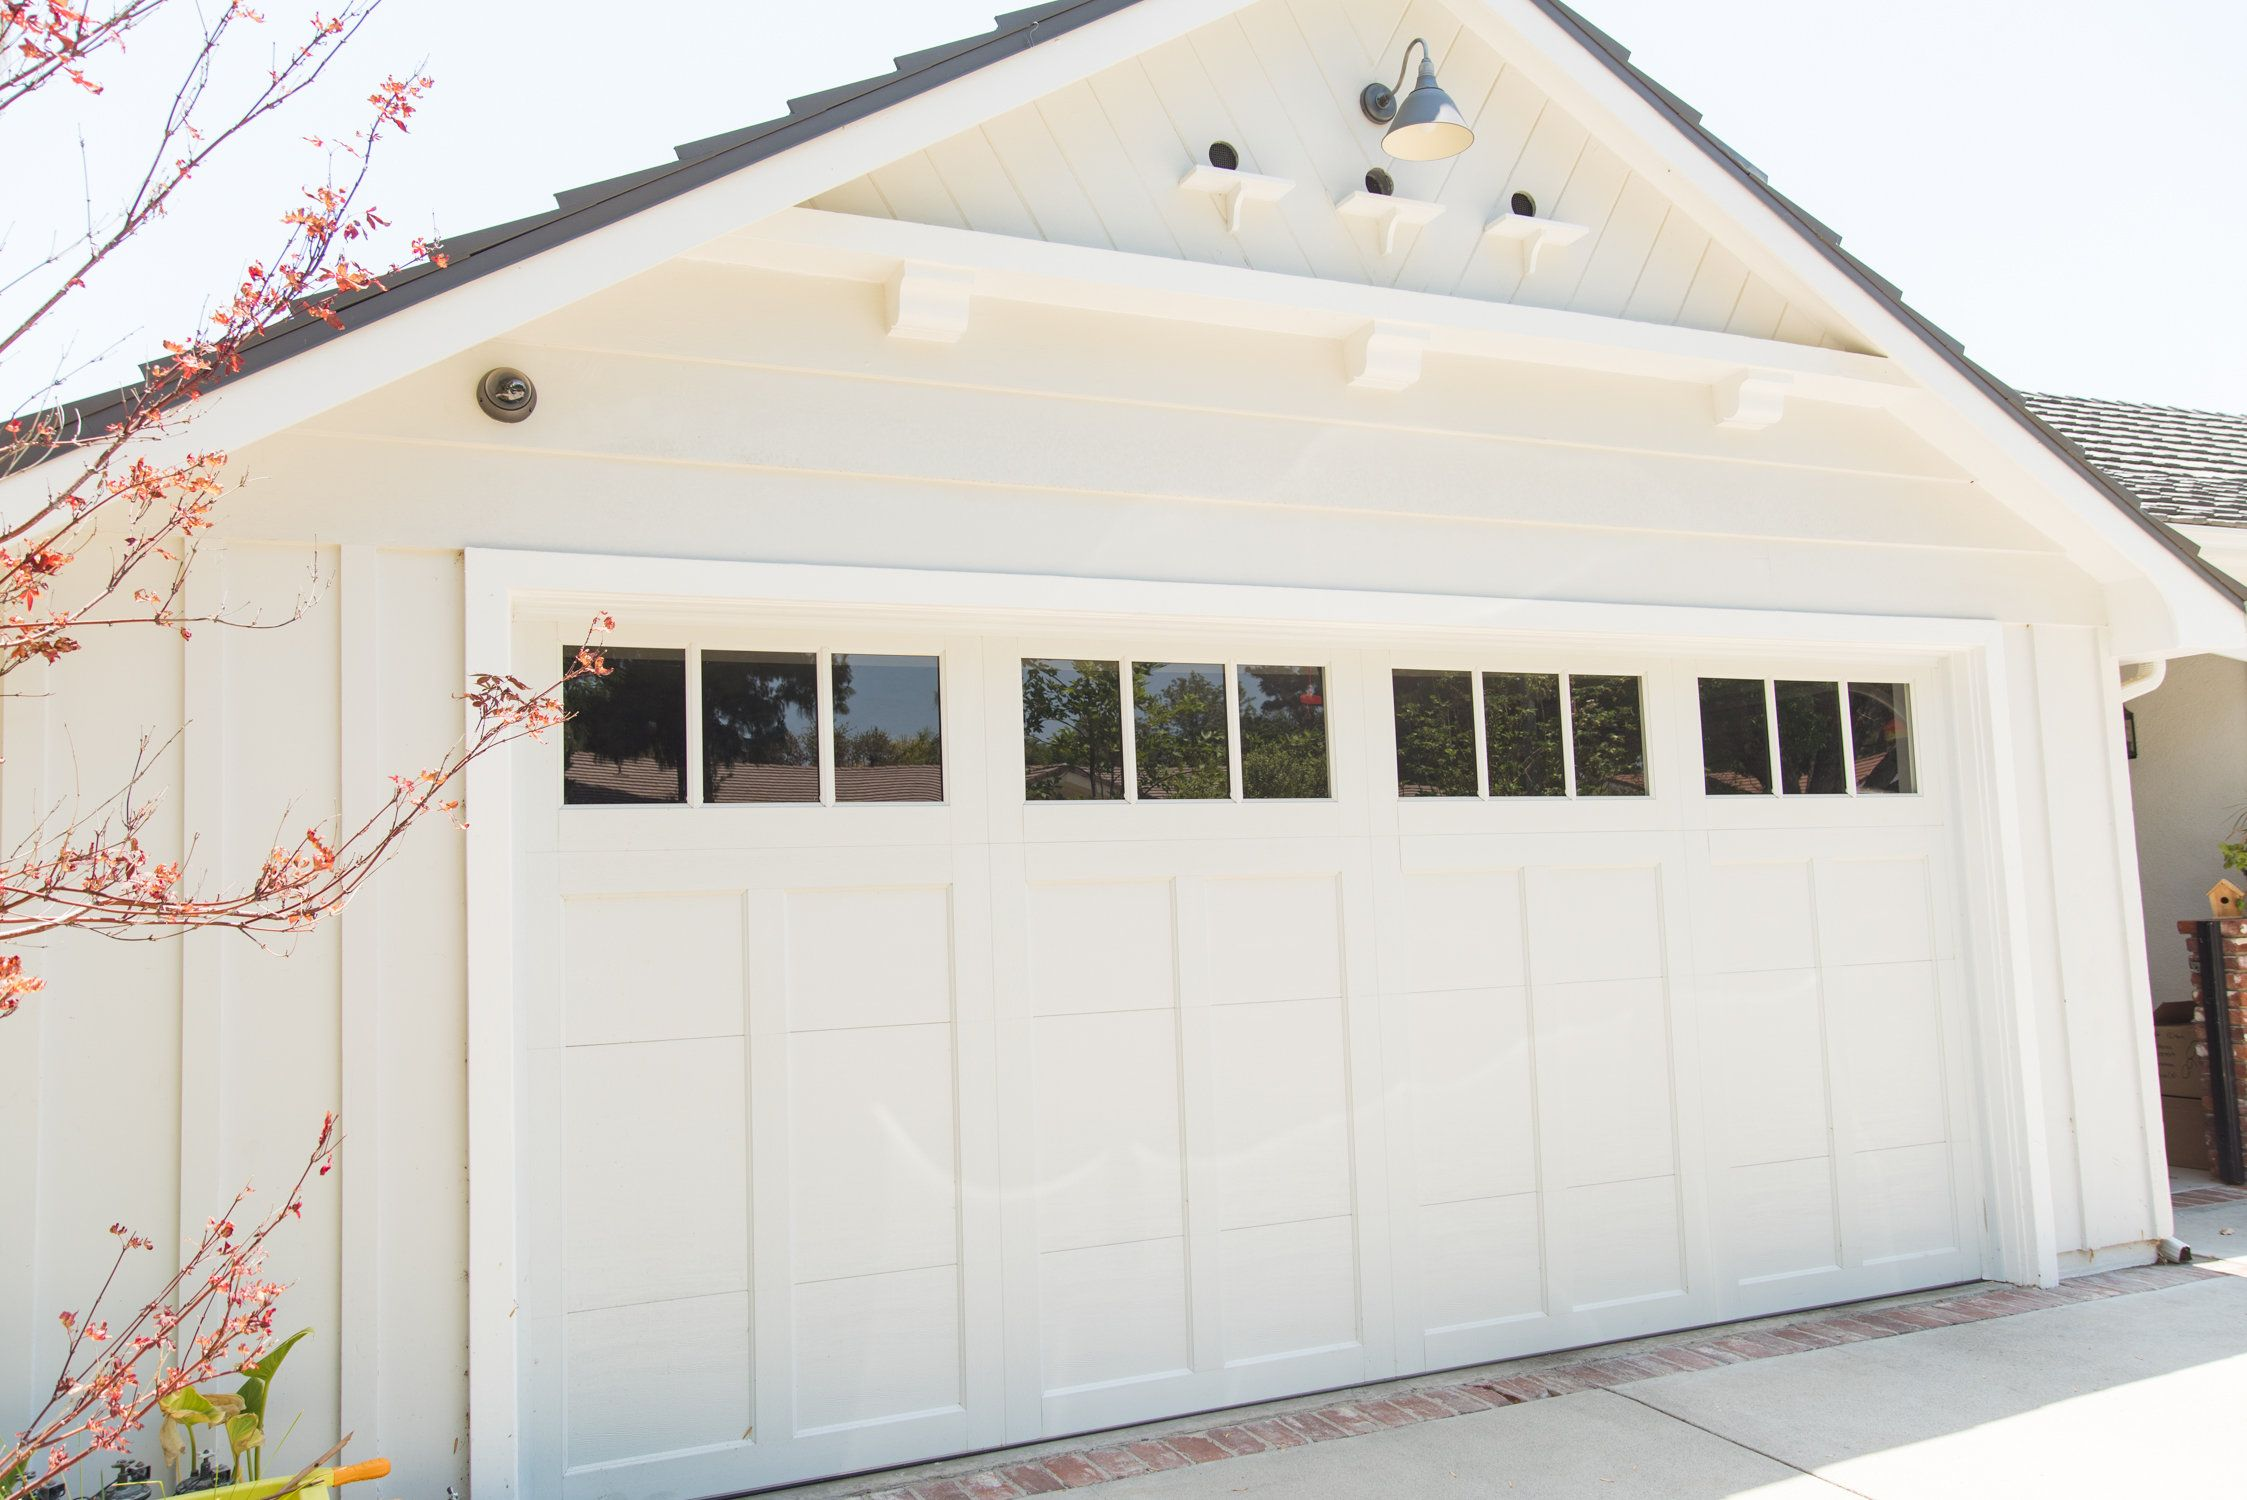 Clopay Coachman Collection Steel And Composite Carriage House Garage Door In White Design 12 With Rec 13 W Garage Door Styles Garage Doors Modern Garage Doors